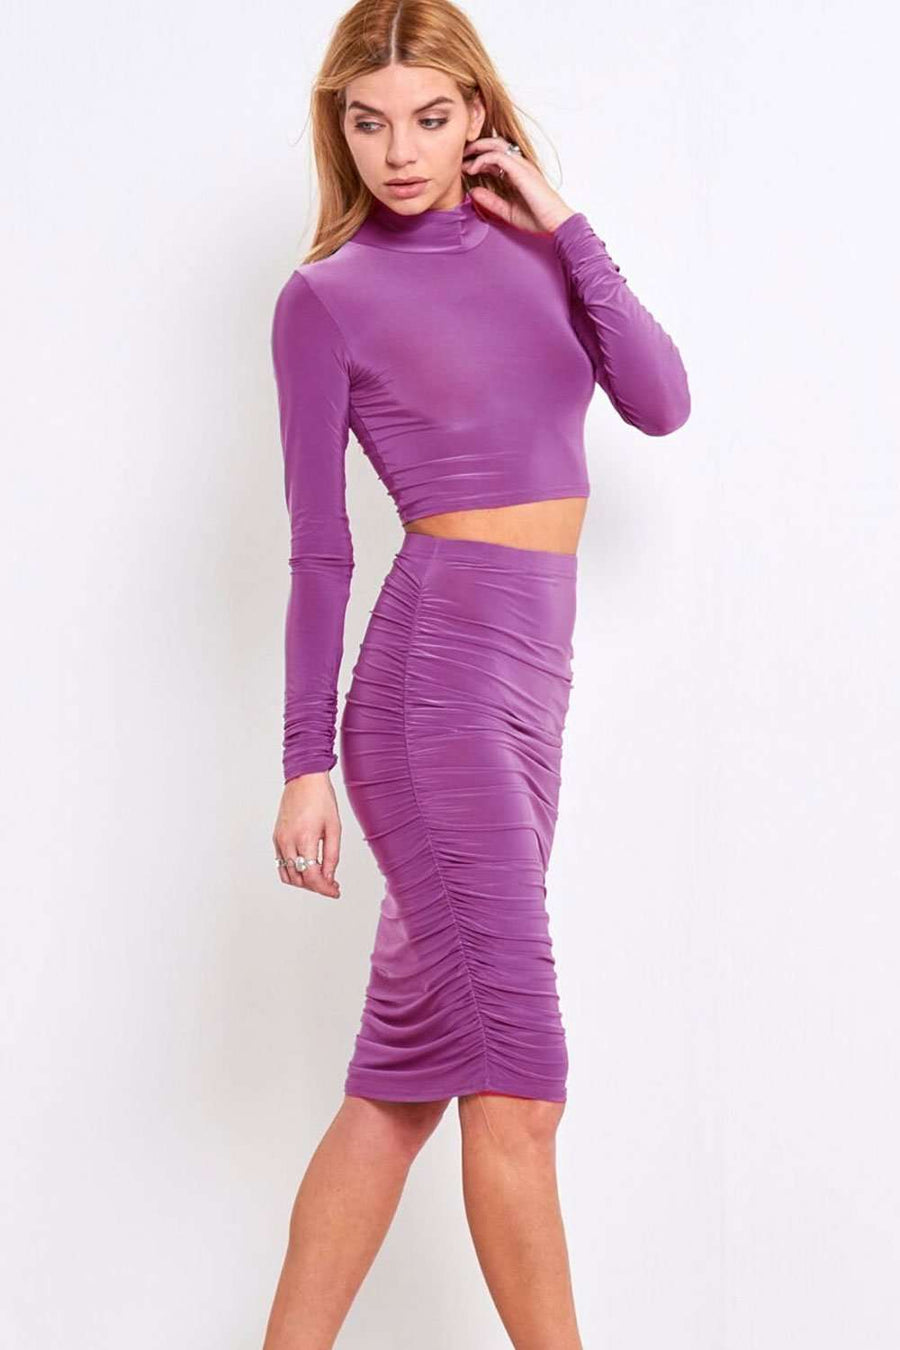 Sallie Long Sleeve Crop Top & Skirt Co Ord - bejealous-com